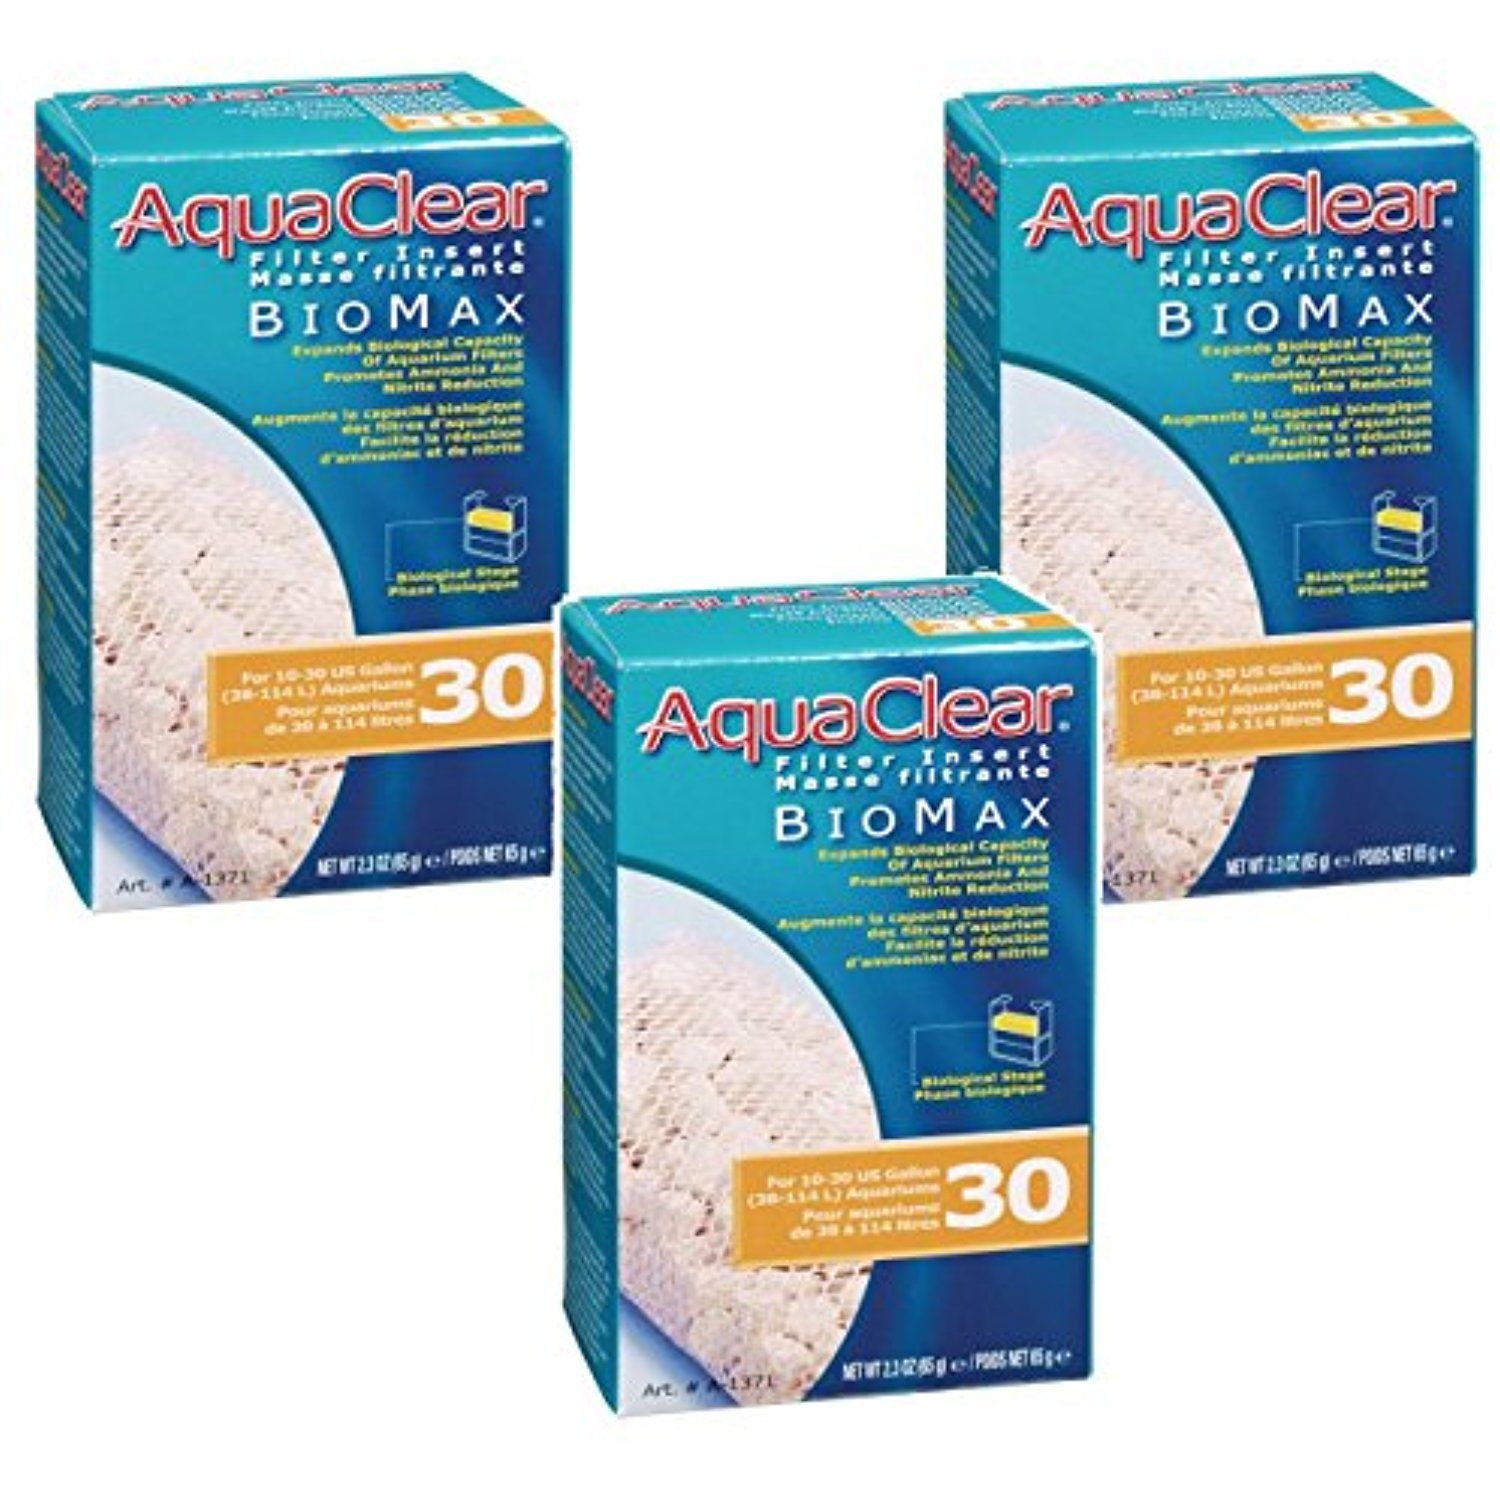 Aquaclear 30gallon Biomax (3 Pack) If you want to